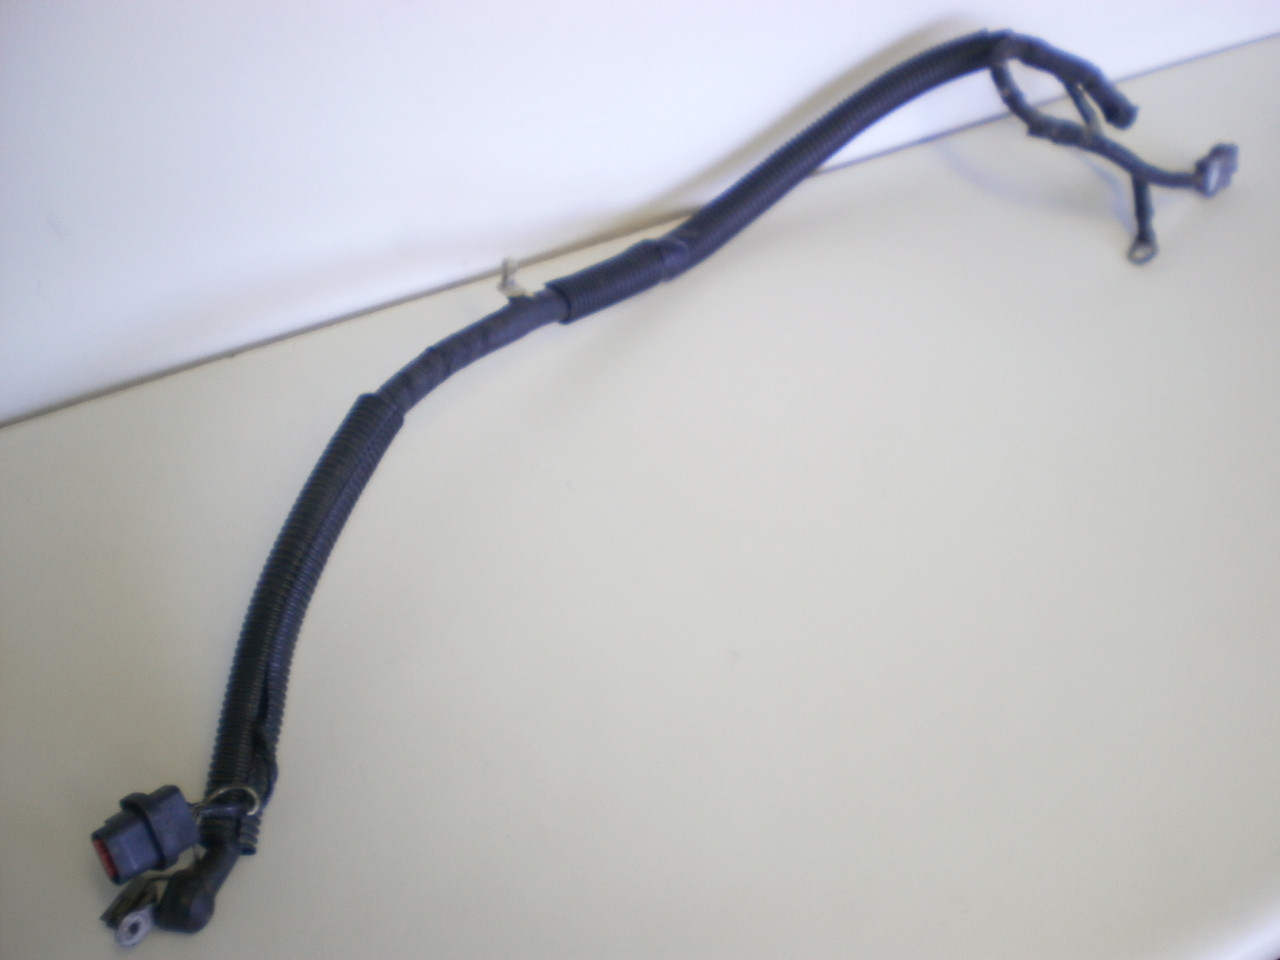 1994 1995 Ford Mustang 50 V8 302 Engine Smog Pump Lines Valves Wiring Harness Larger More Photos